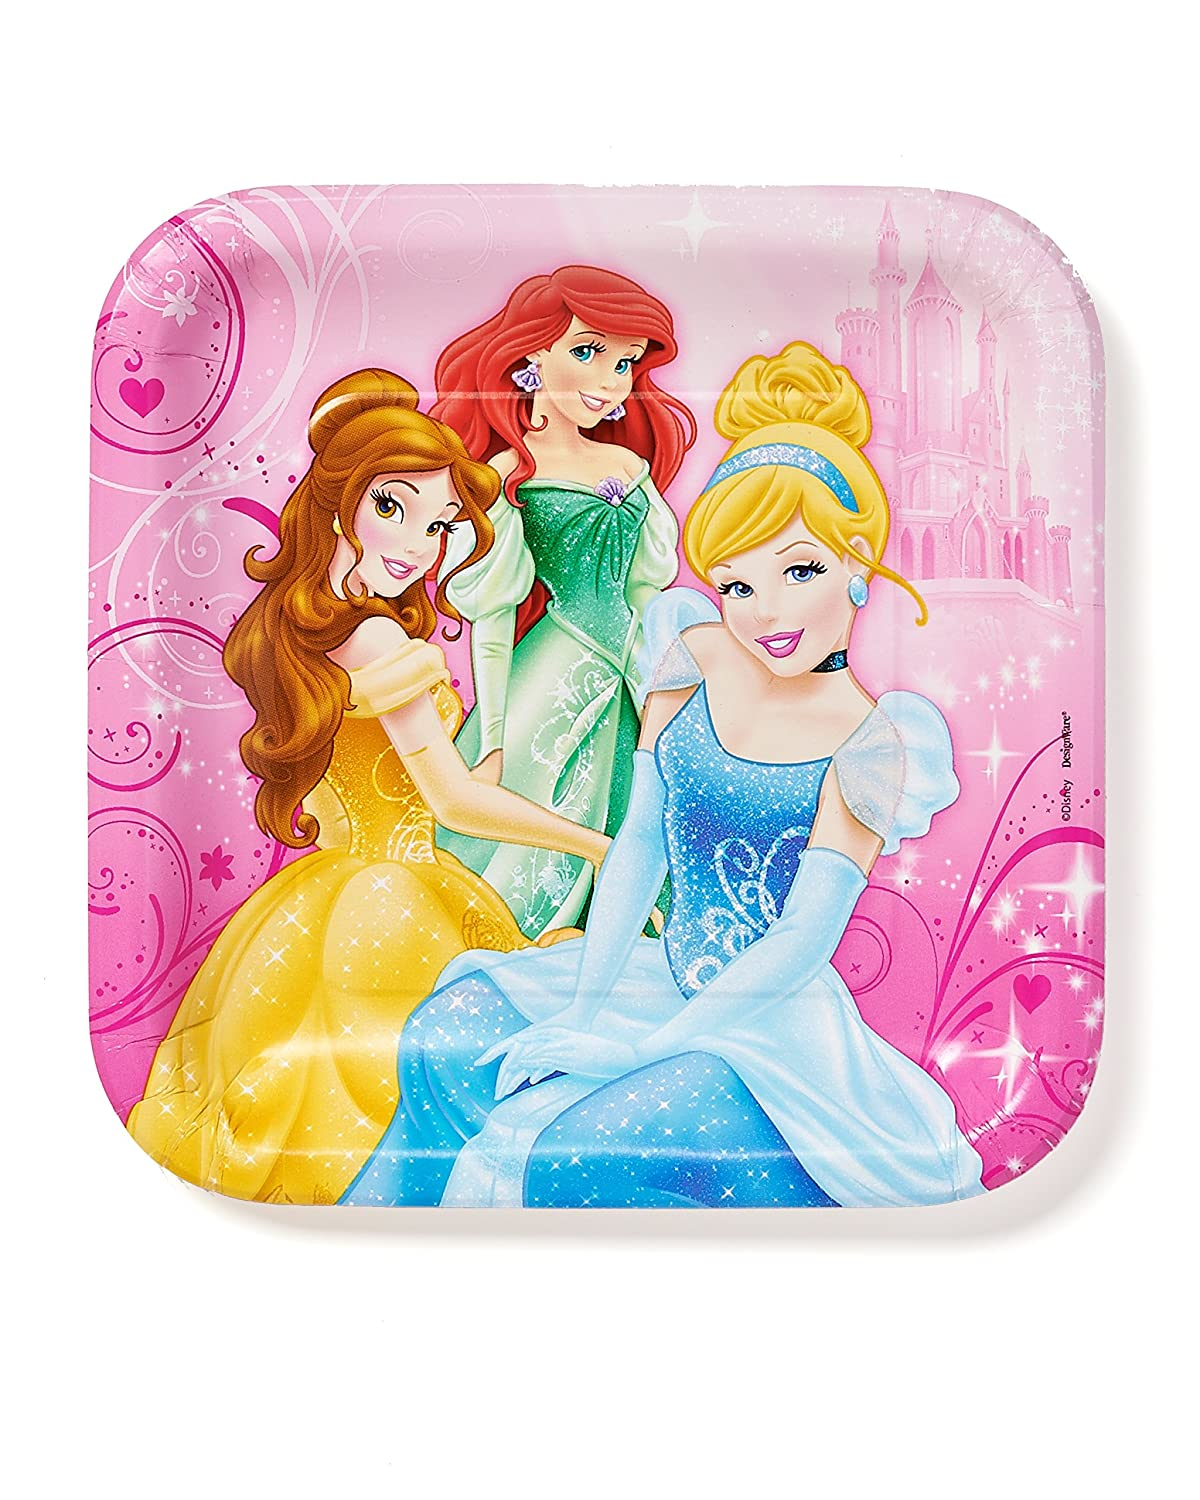 Pretty Disney Princess paper plates feature Cinderella Belle and Ariel!  sc 1 st  Birthday Party Themes & Disney Princess Paper Plates | Birthday Wikii